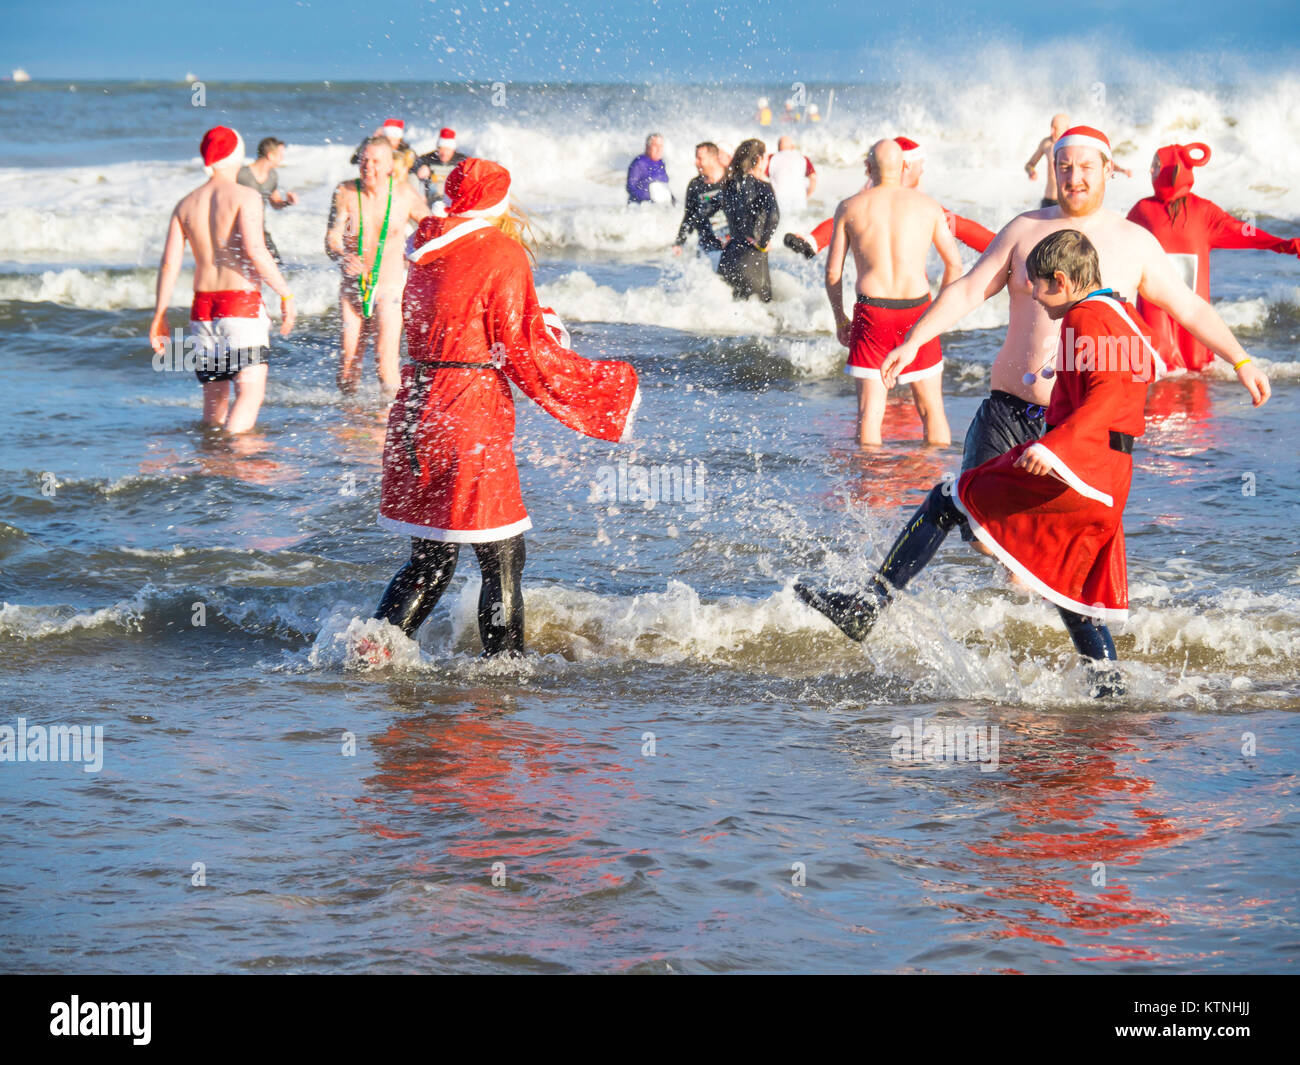 Redcar Cleveland, UK  26th Dec, 2017  The annual Boxing Day